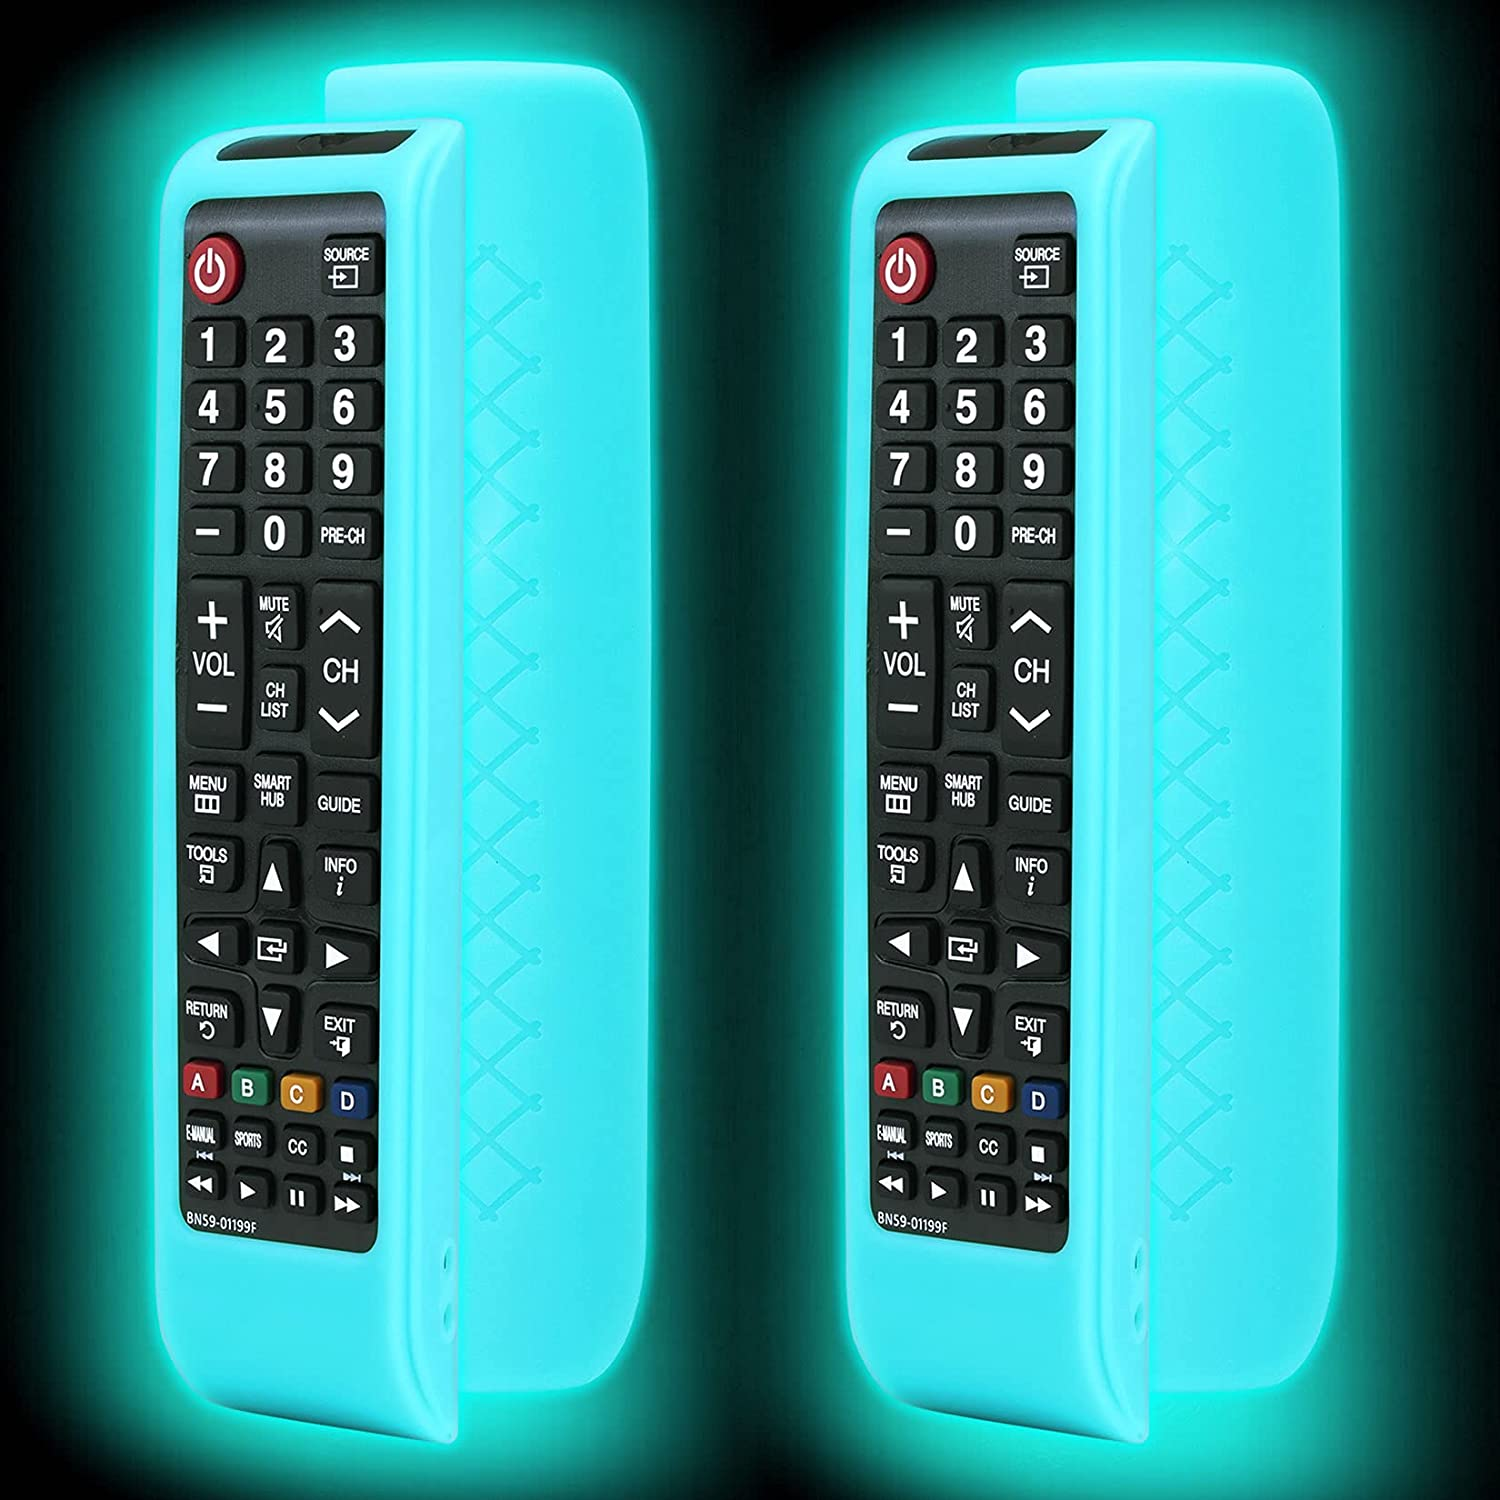 2 Pack Remote case for Samsung TV Controller, Silicone Remote Cover for BN59-01199F Samsung Remote Control, Smart TV Remote Skin Sleeve Glow in The Dark Sky Blue